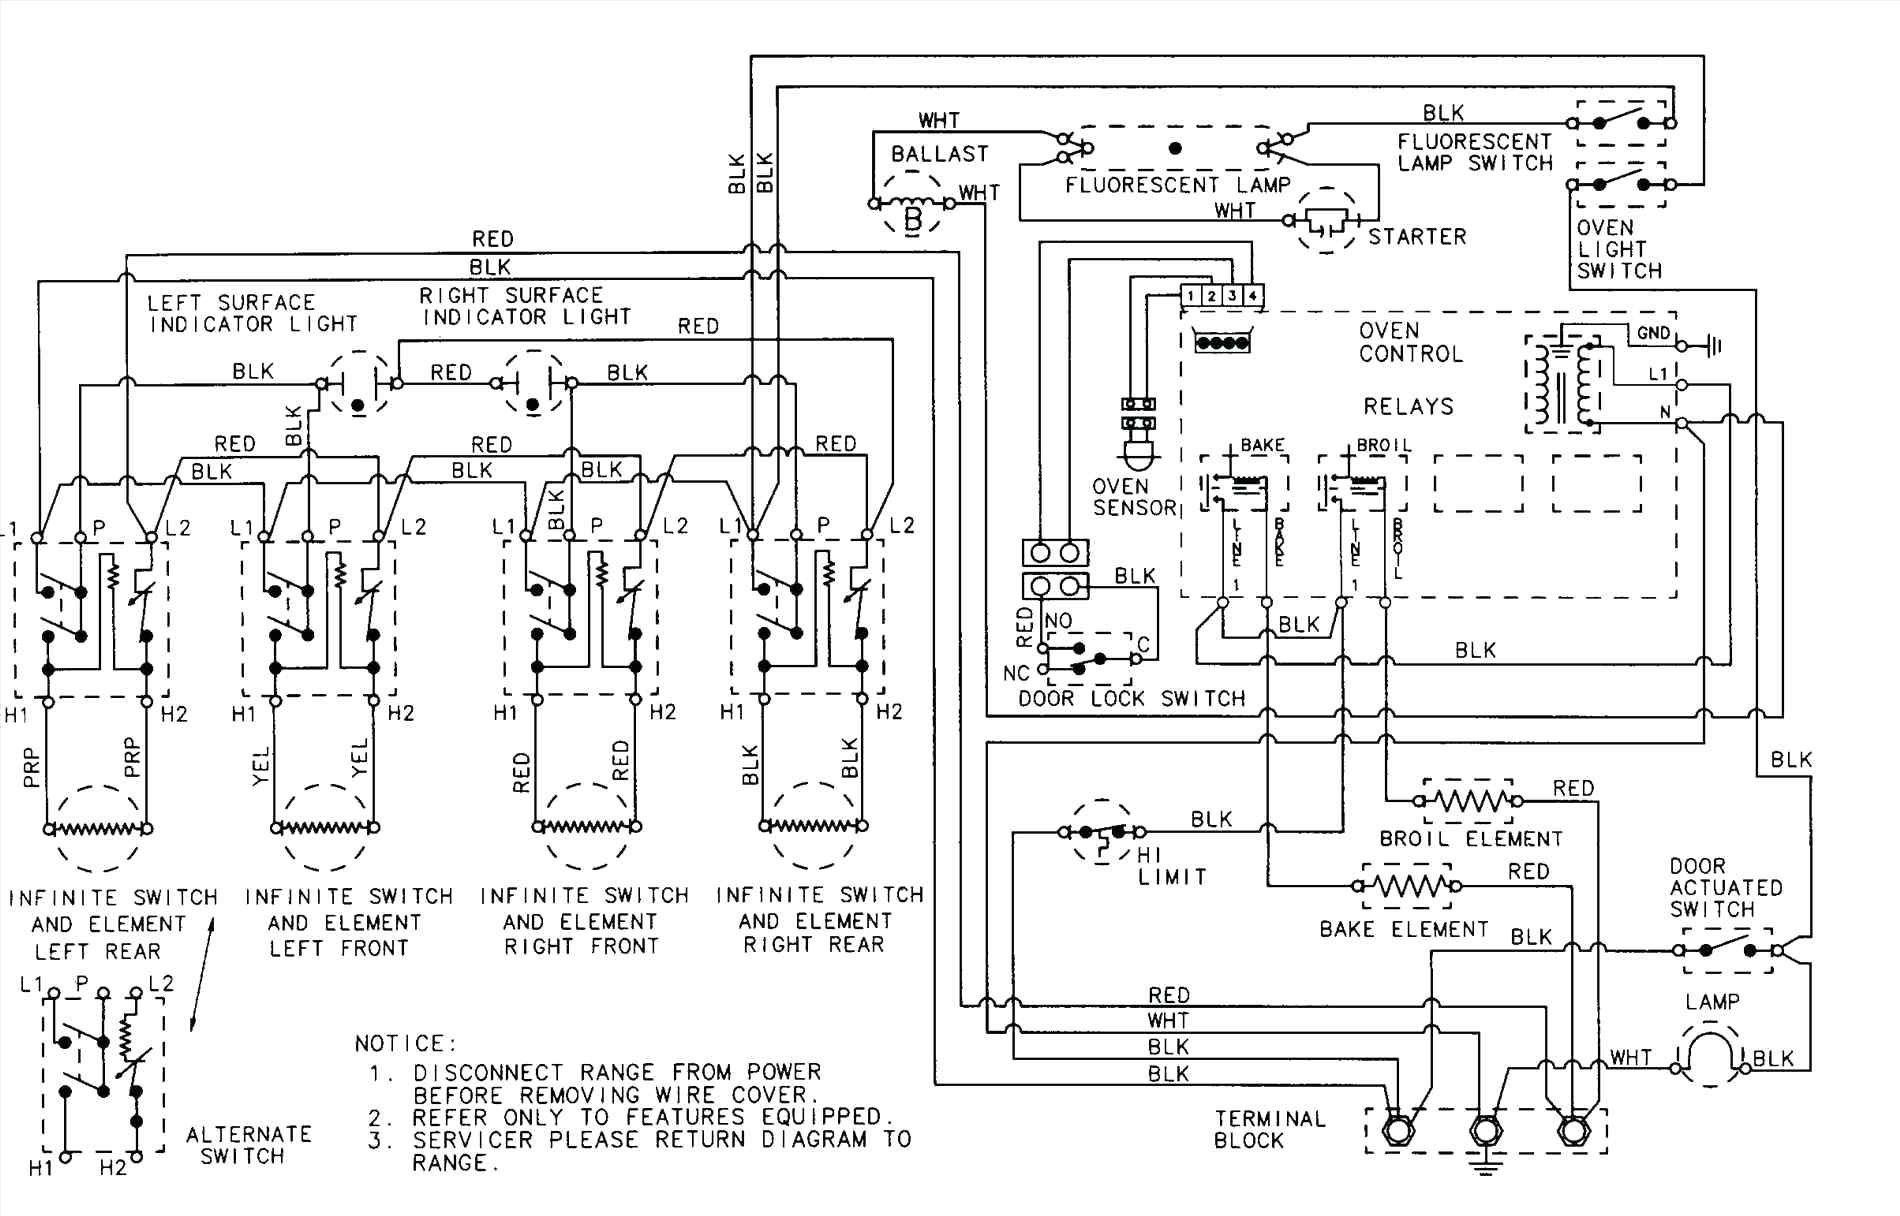 ge dryer start switch wiring diagram Download-Ge Dryer Start Switch Wiring Diagram Fresh Ge Dryer Timer Wiring Diagram Example Electrical Wiring Diagram 3-r